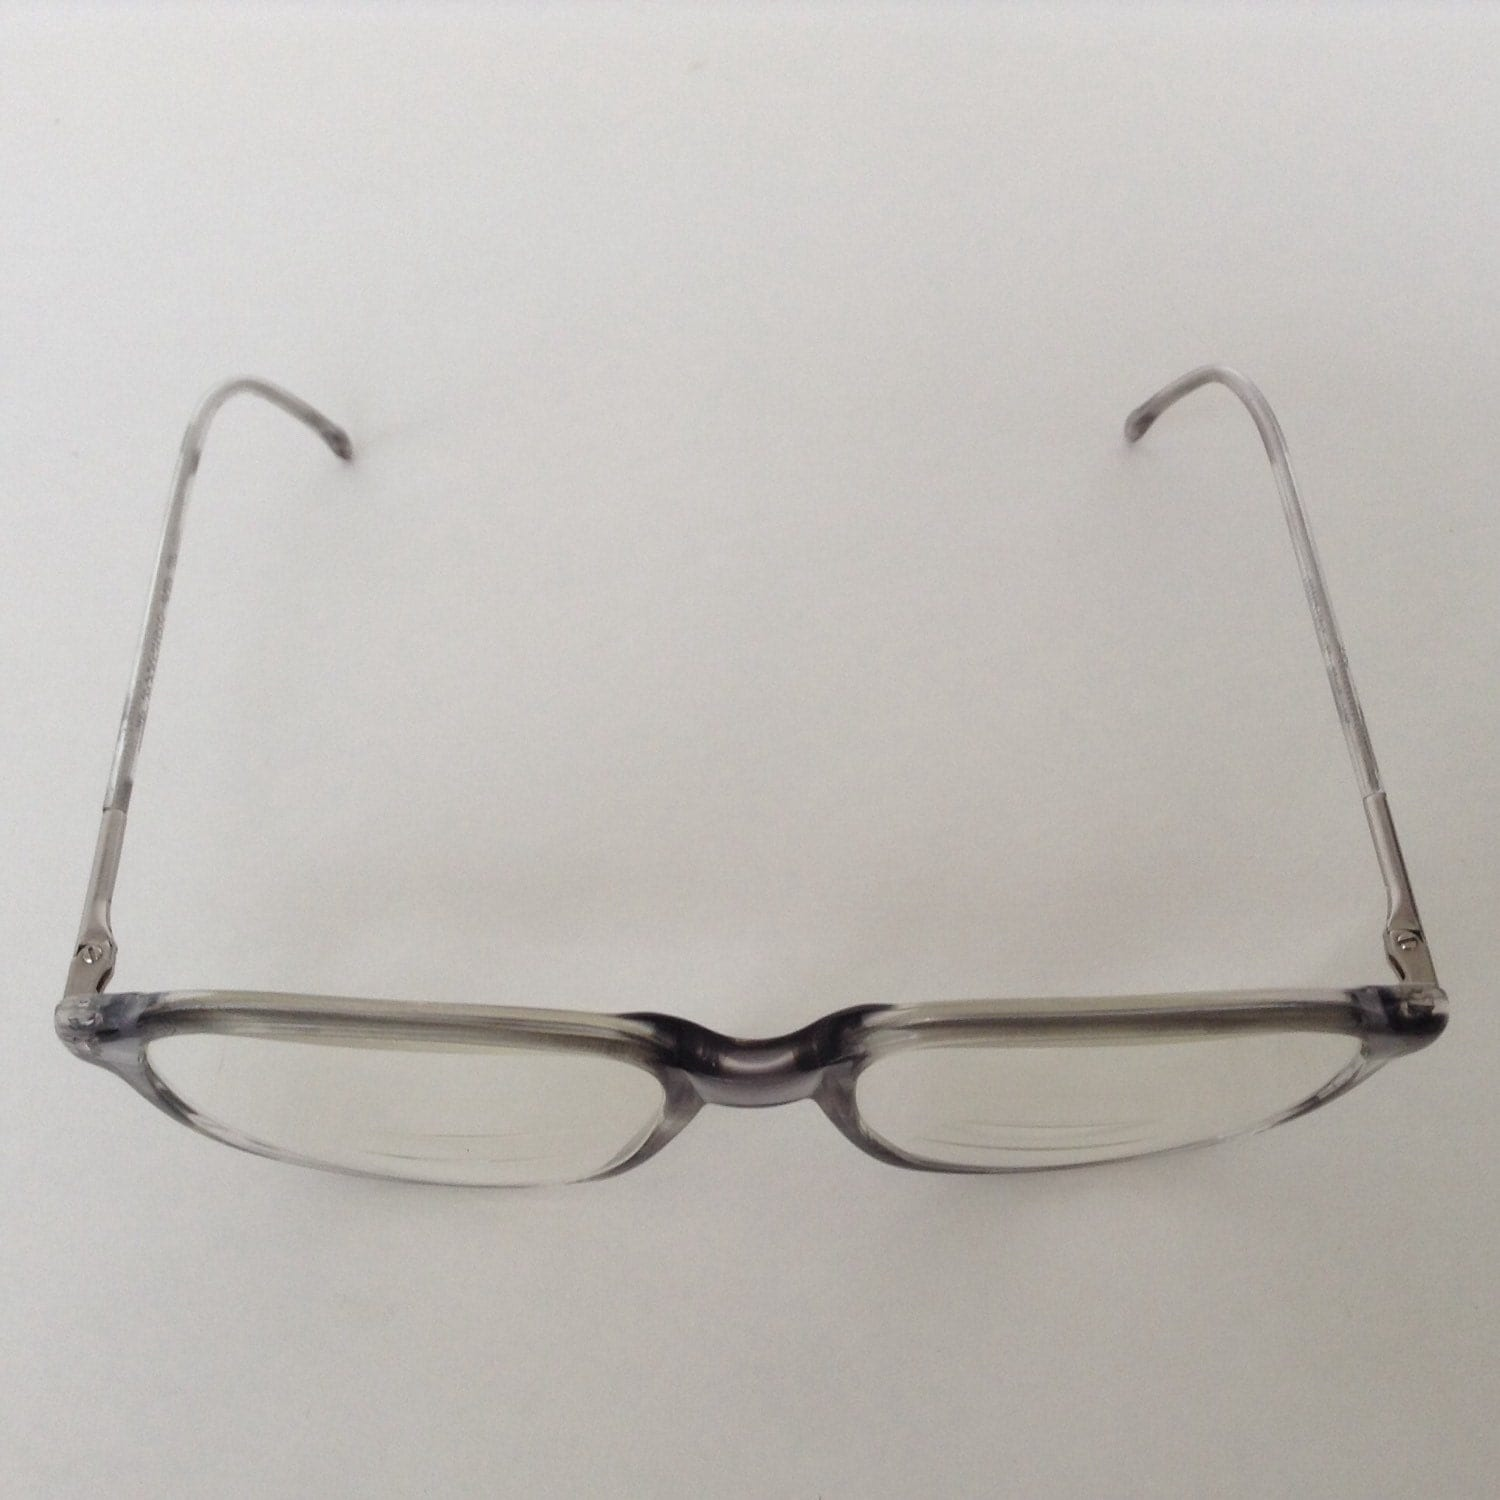 Marchon Eyeglasses Men or Womens Grey Fade Frames Made in Italy ...